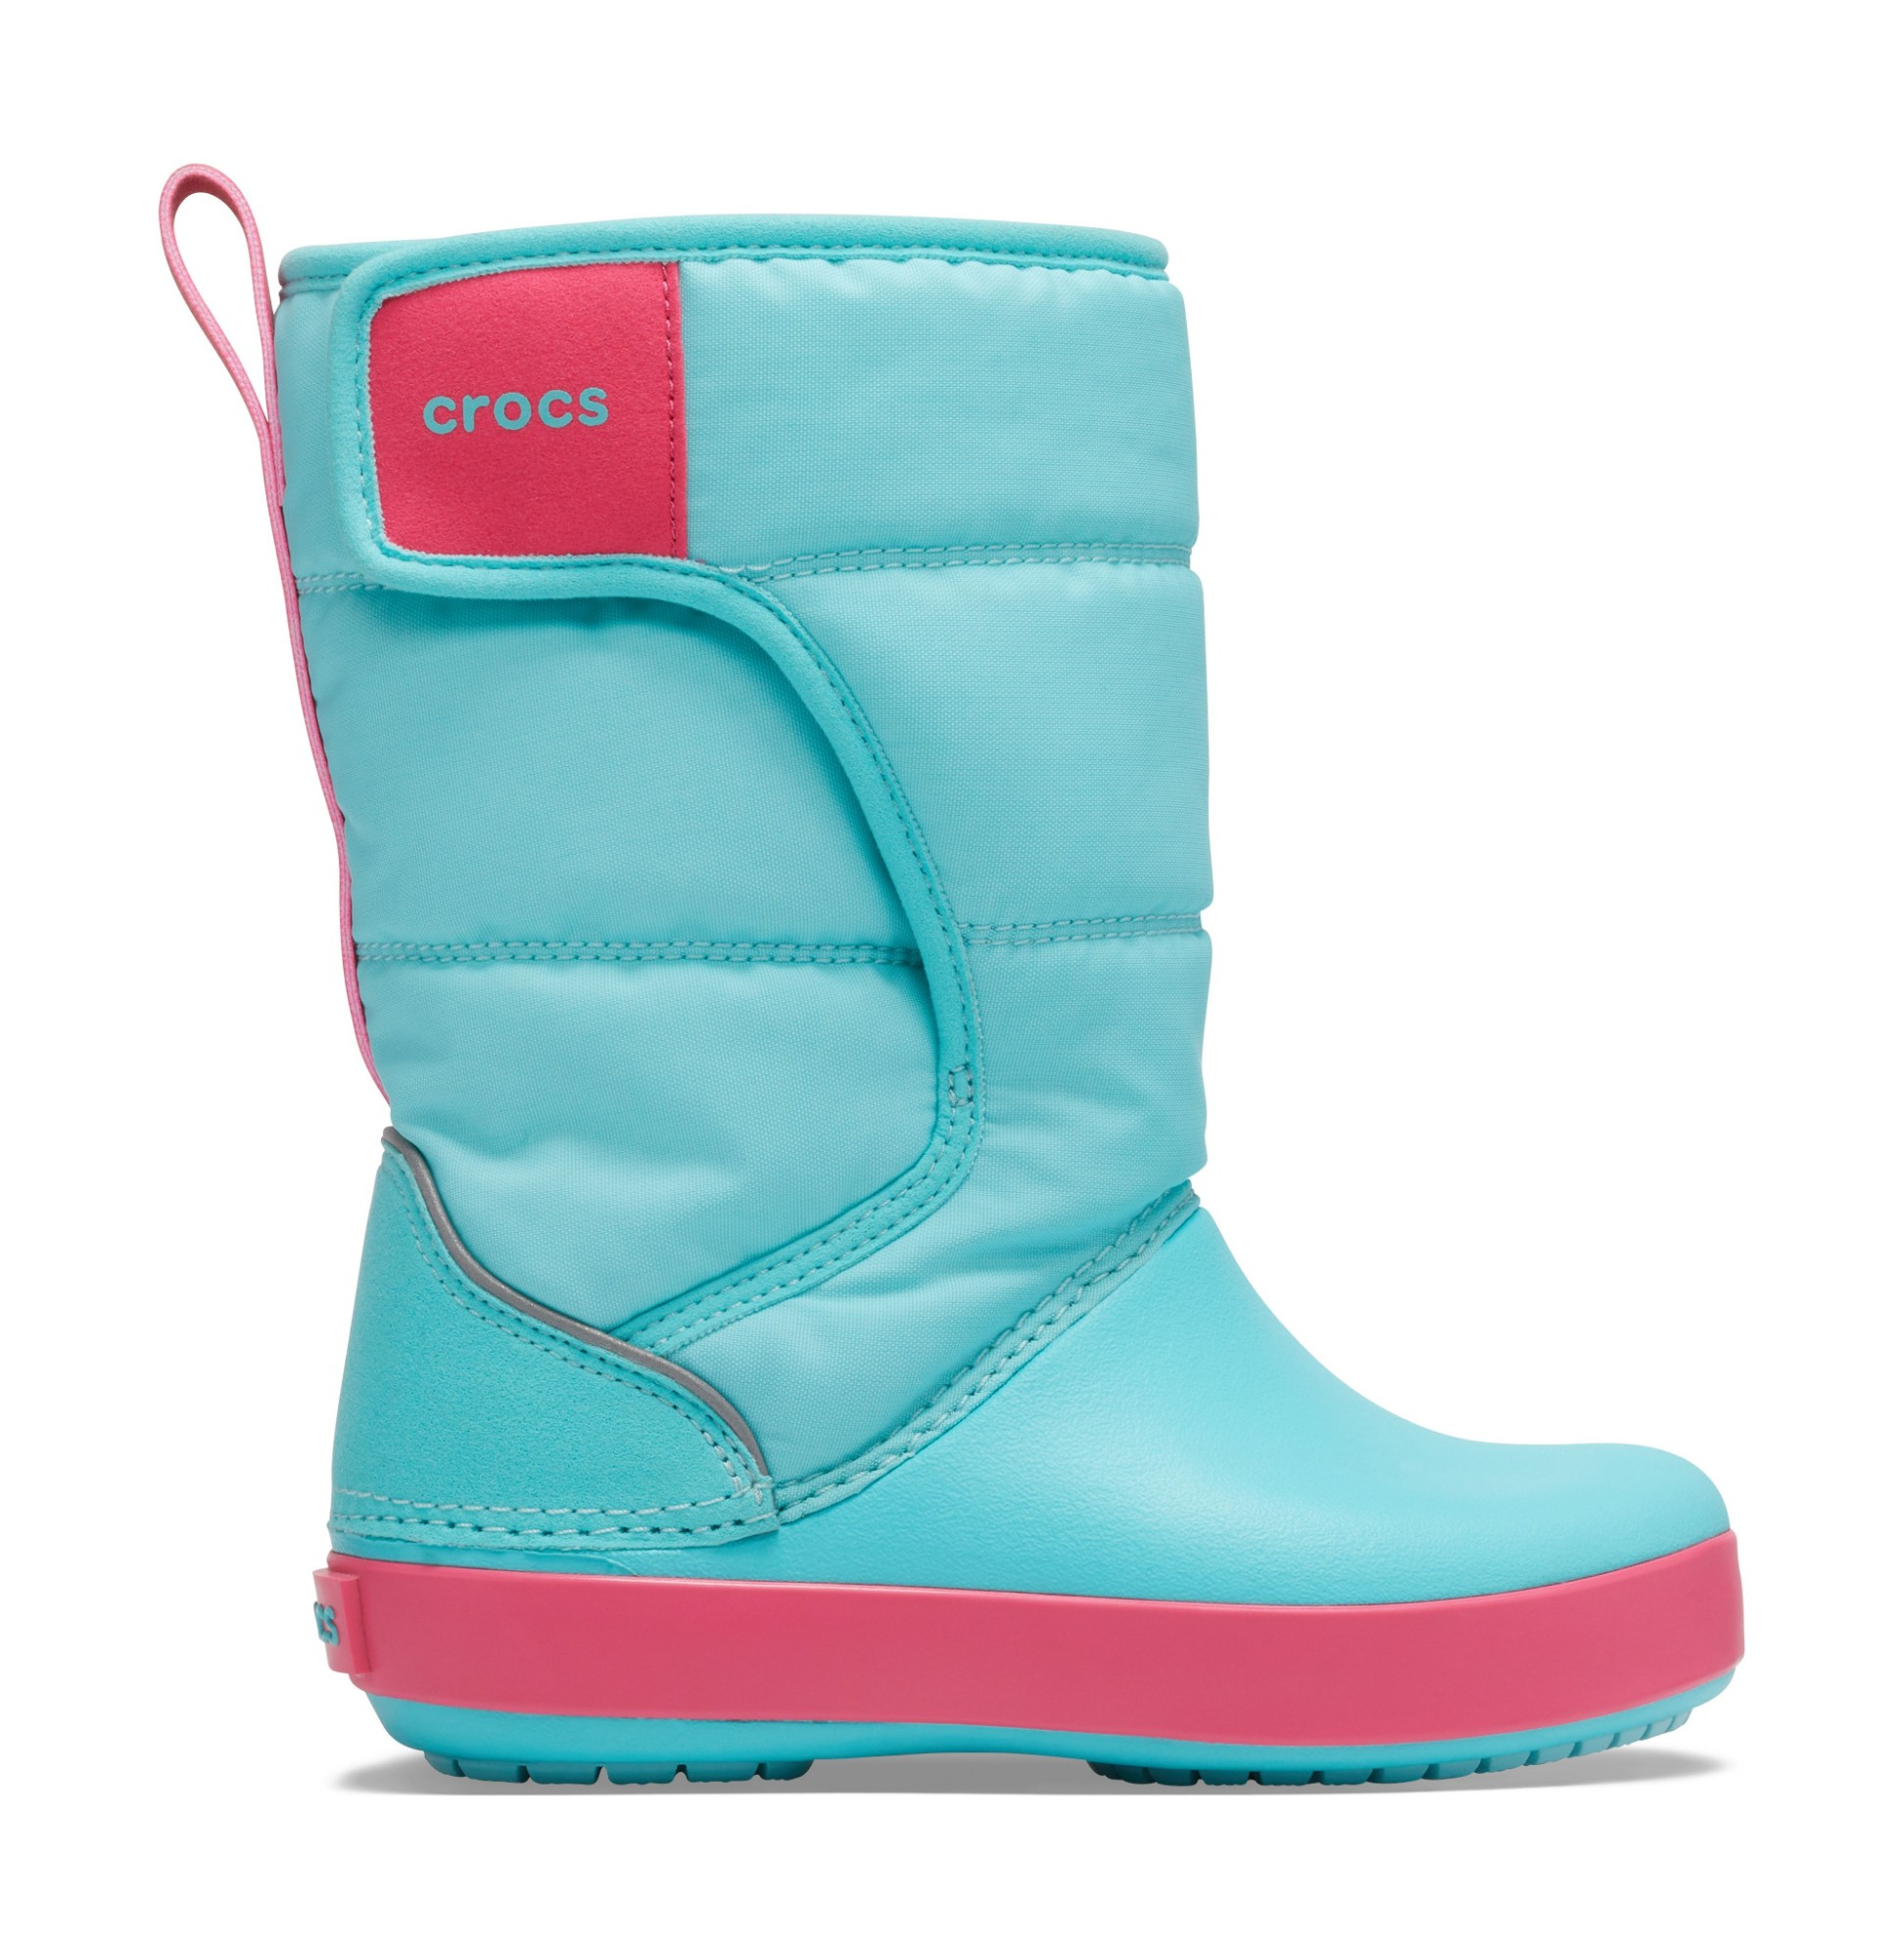 Crocs™ Lodgepoint Snow Boot Kid's Ice Blue/Pool 25